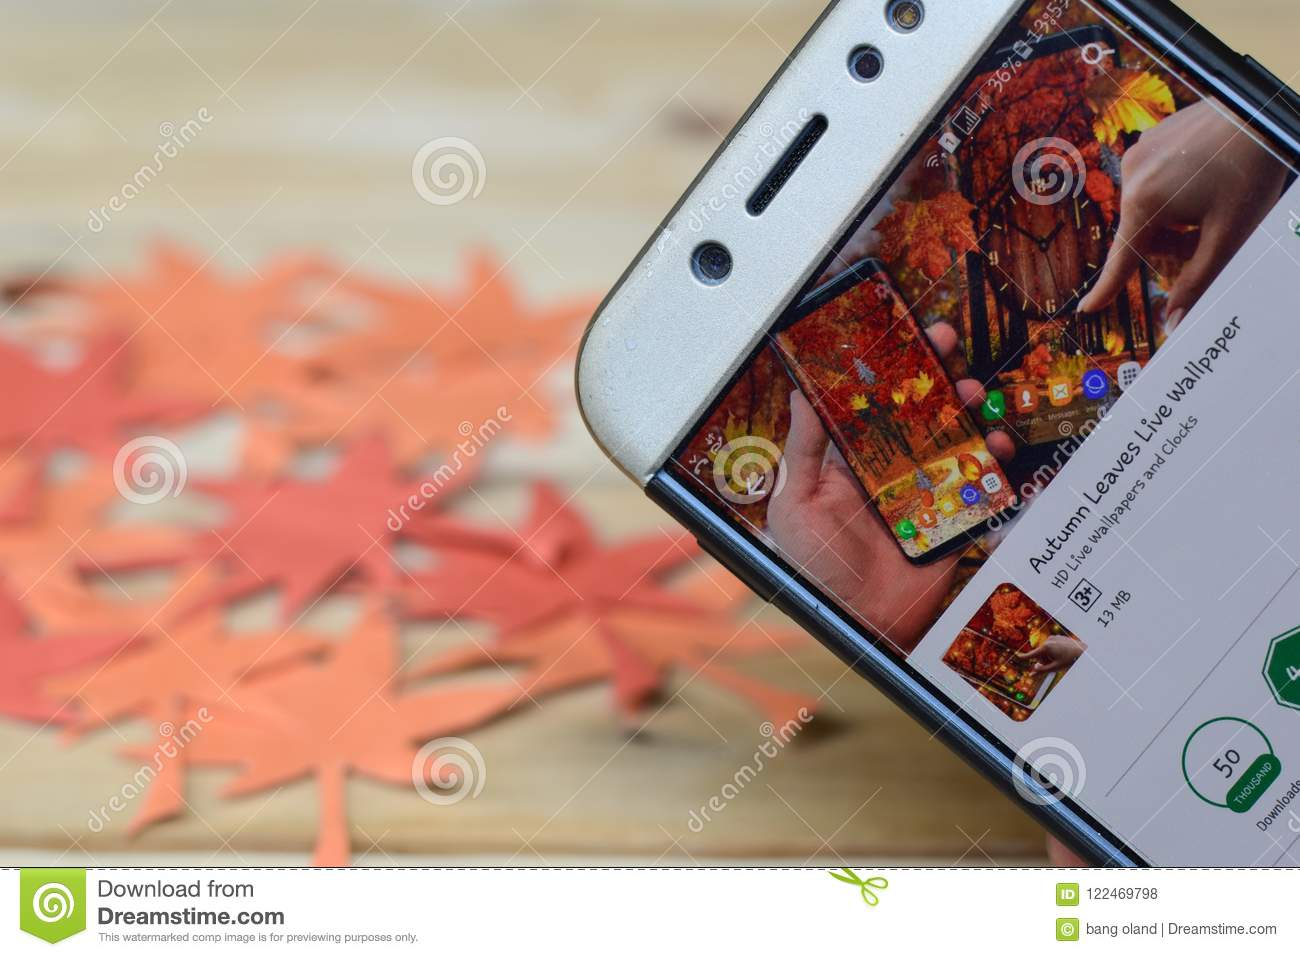 Autumn Leaves Live Wallpaper App En La Pantalla De